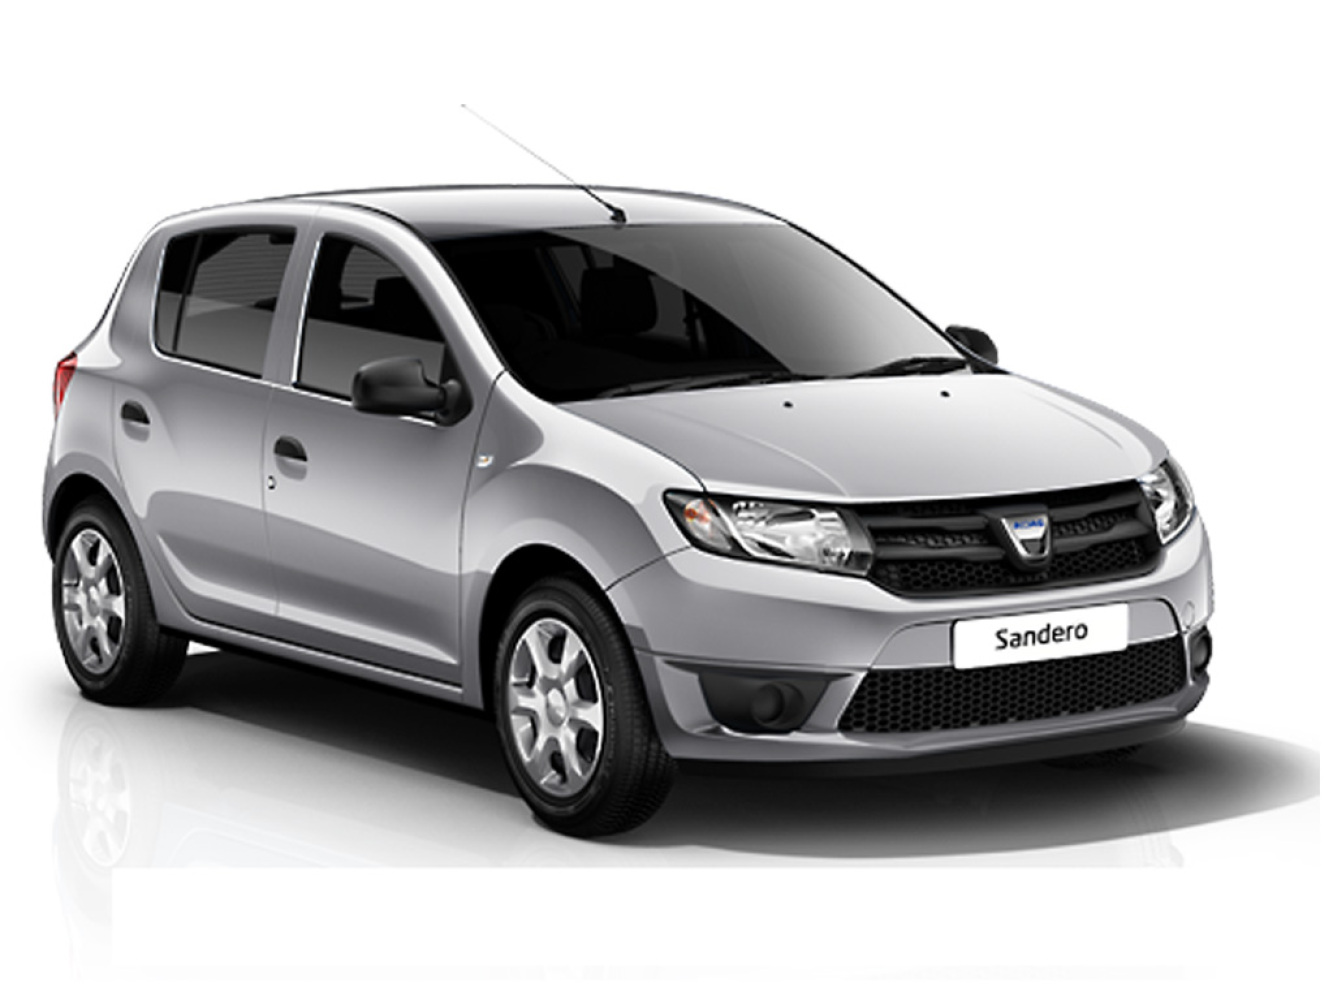 new dacia sandero 1 0 sce access 5dr petrol hatchback for. Black Bedroom Furniture Sets. Home Design Ideas